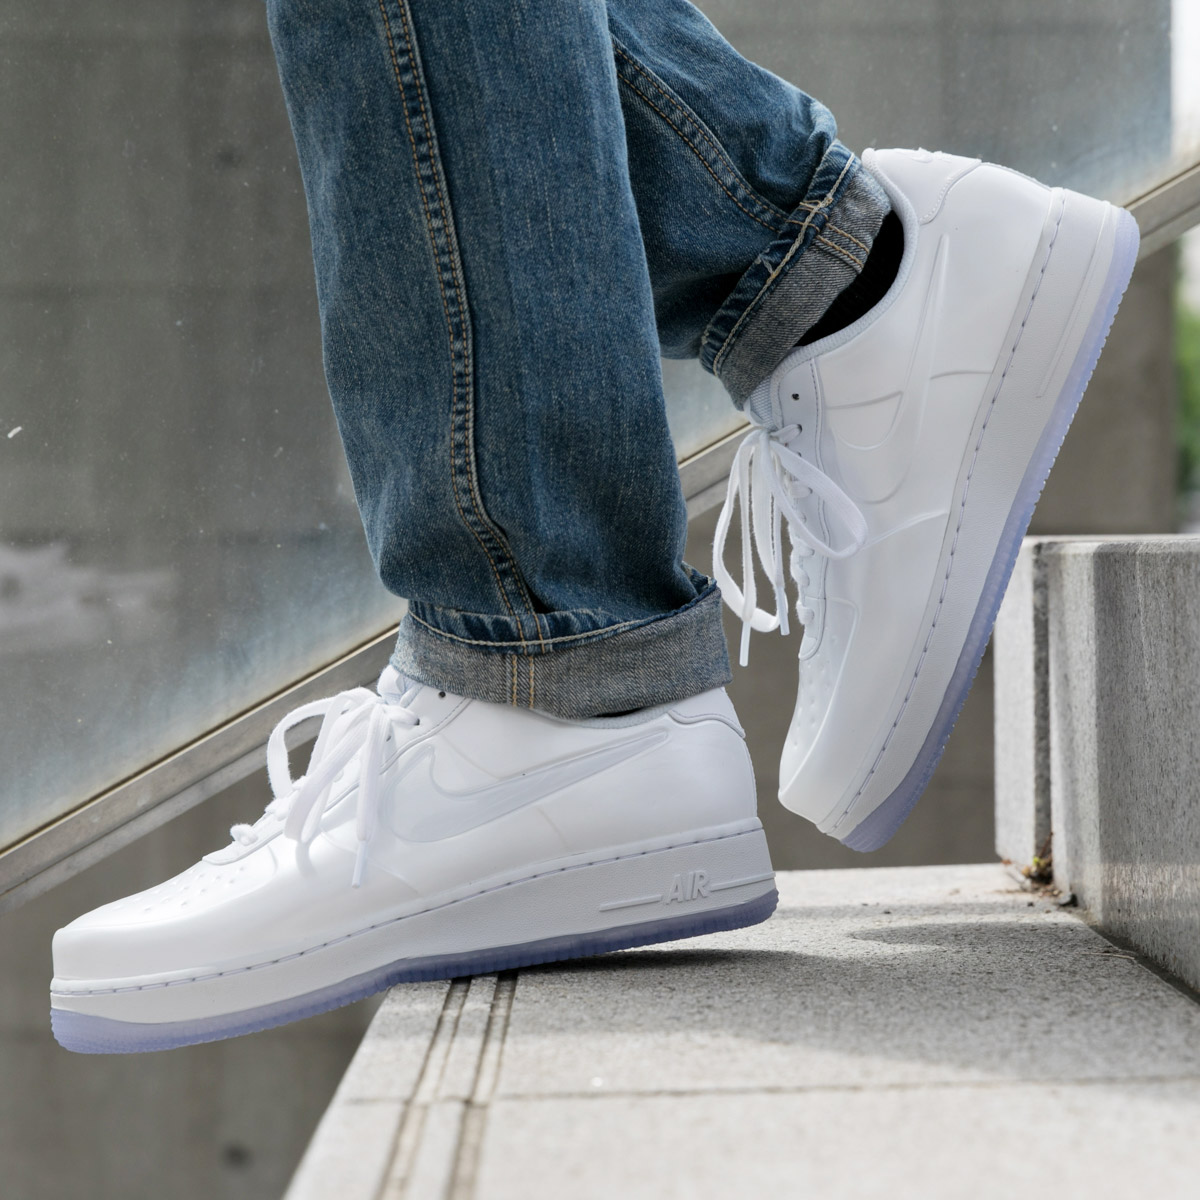 7ed80376e6c97 NIKE AF1 FOAMPOSITE PRO CUP (Nike AF1 フォームポジットプロカップ) (WHITE WHITE-WHITE)  18SU-S